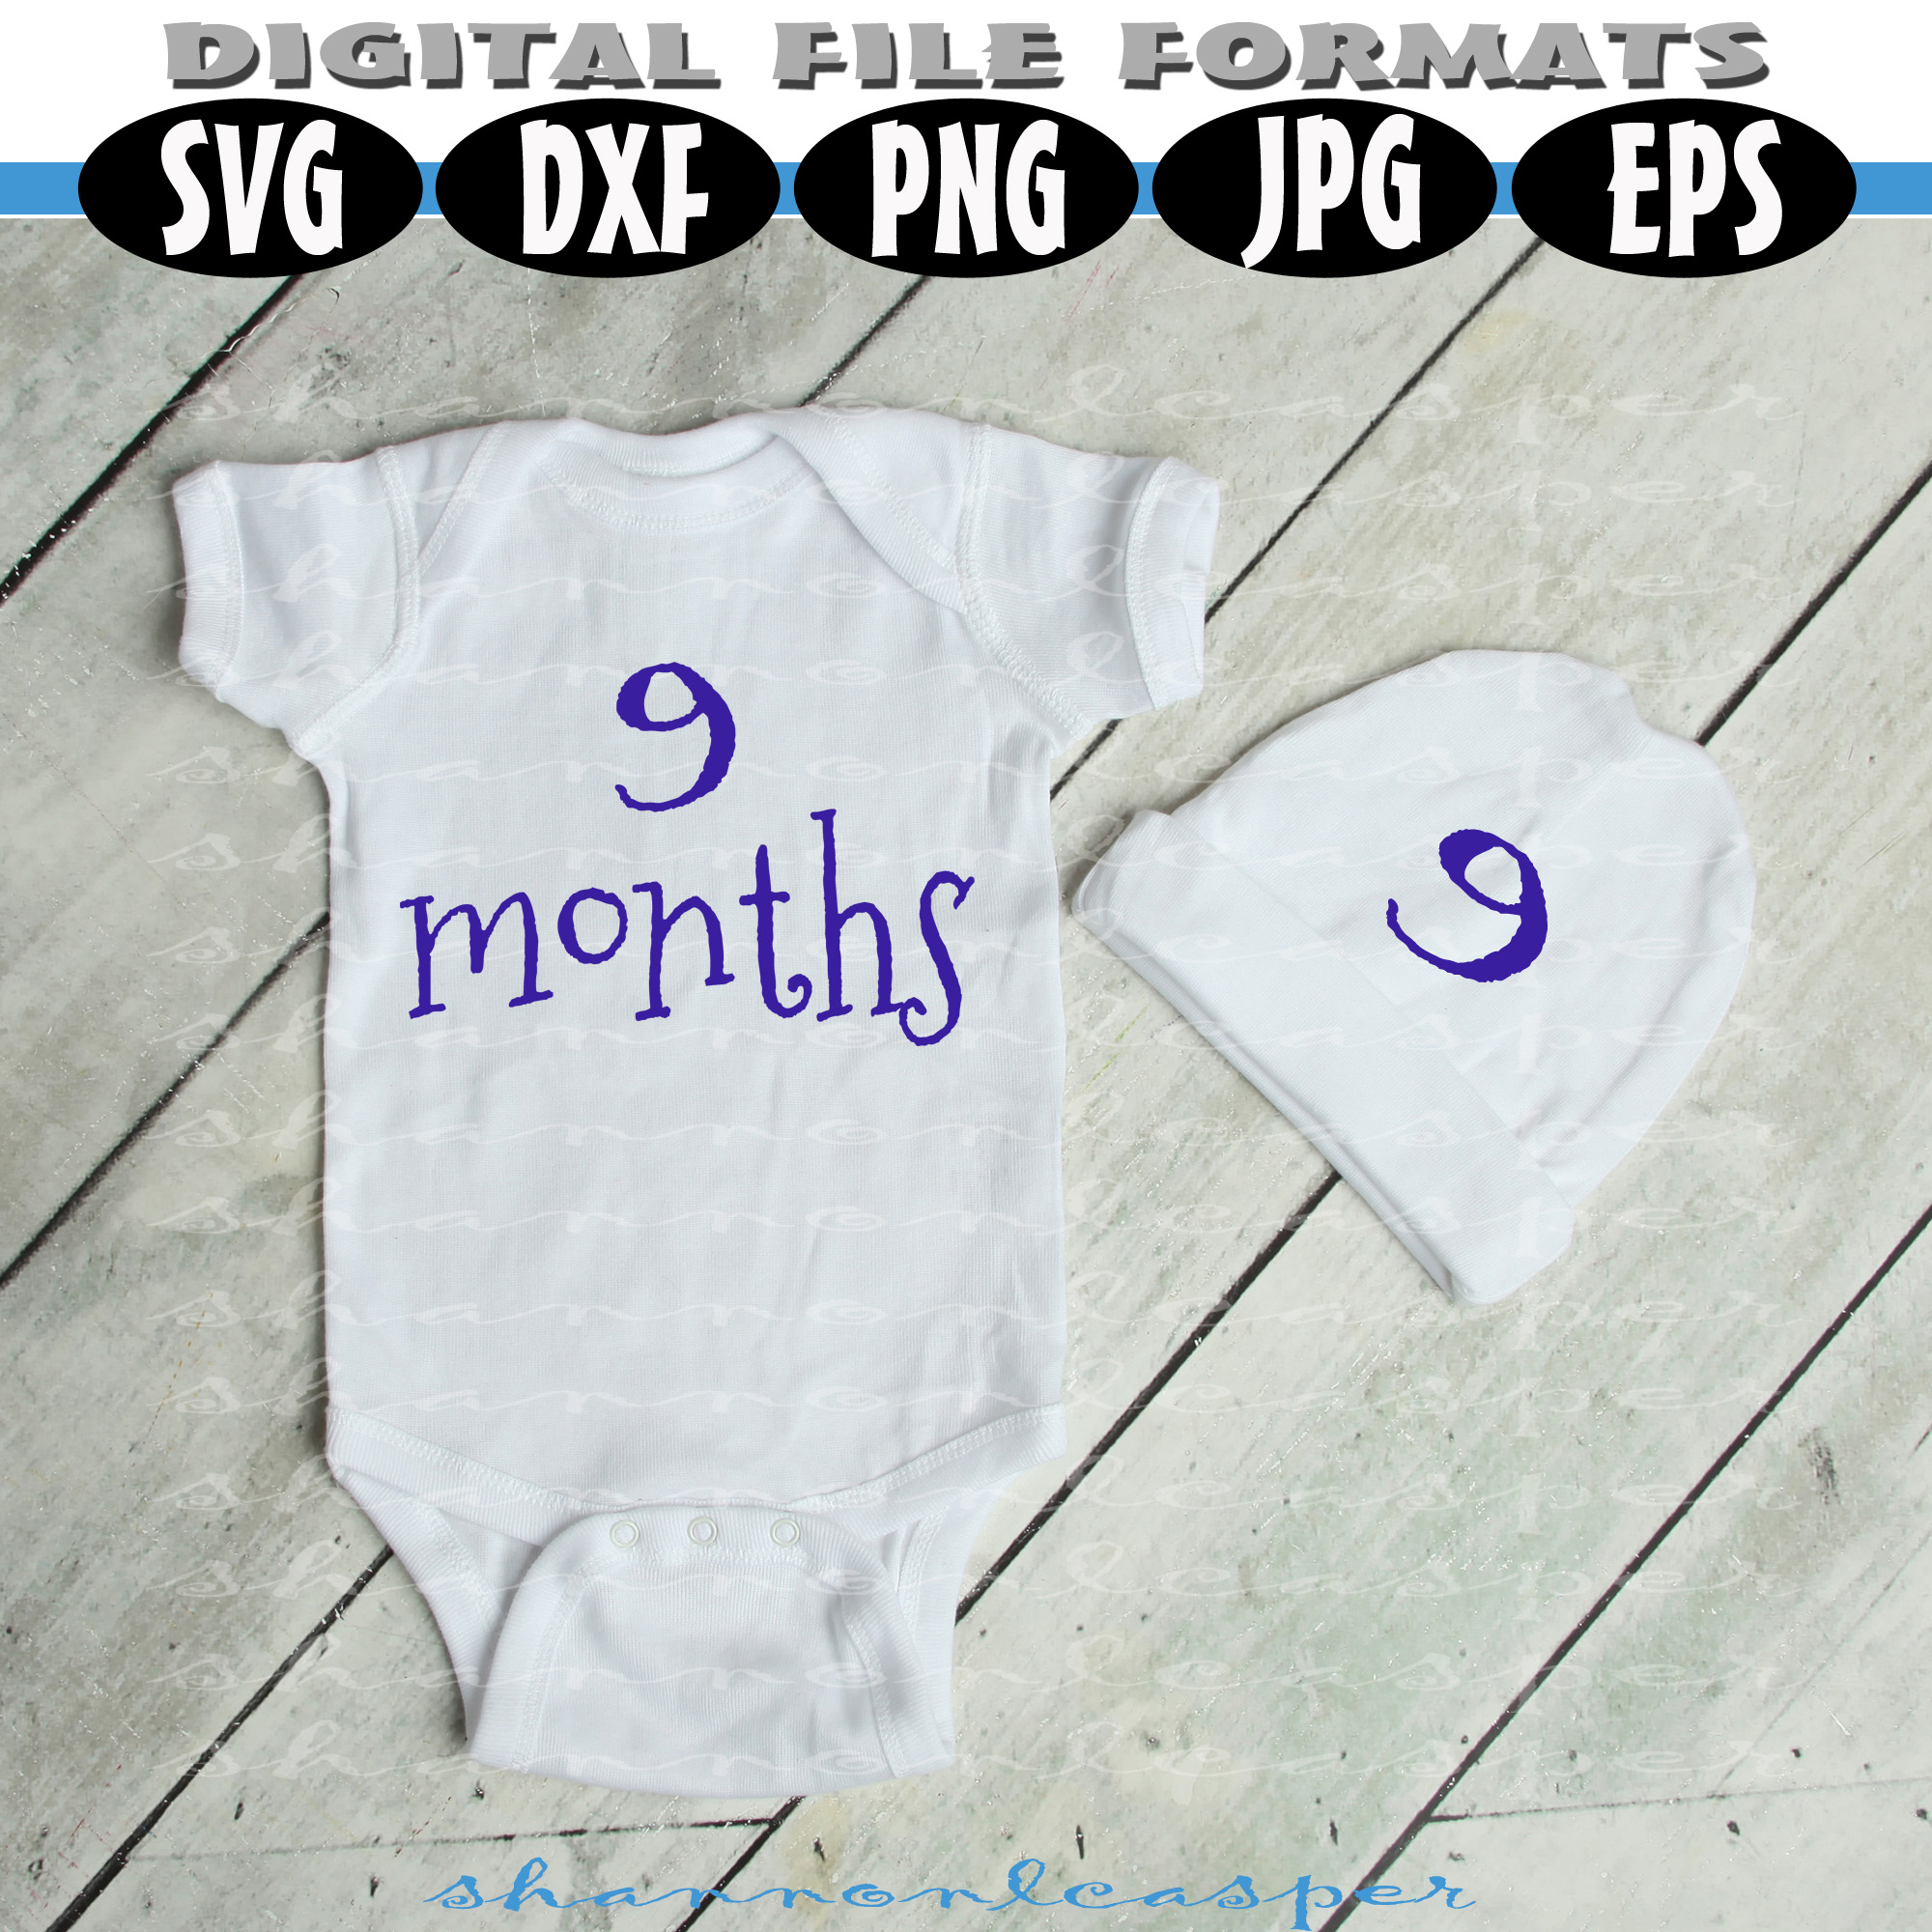 Baby Shirt Months 1-12 for Growing Pictures example image 3